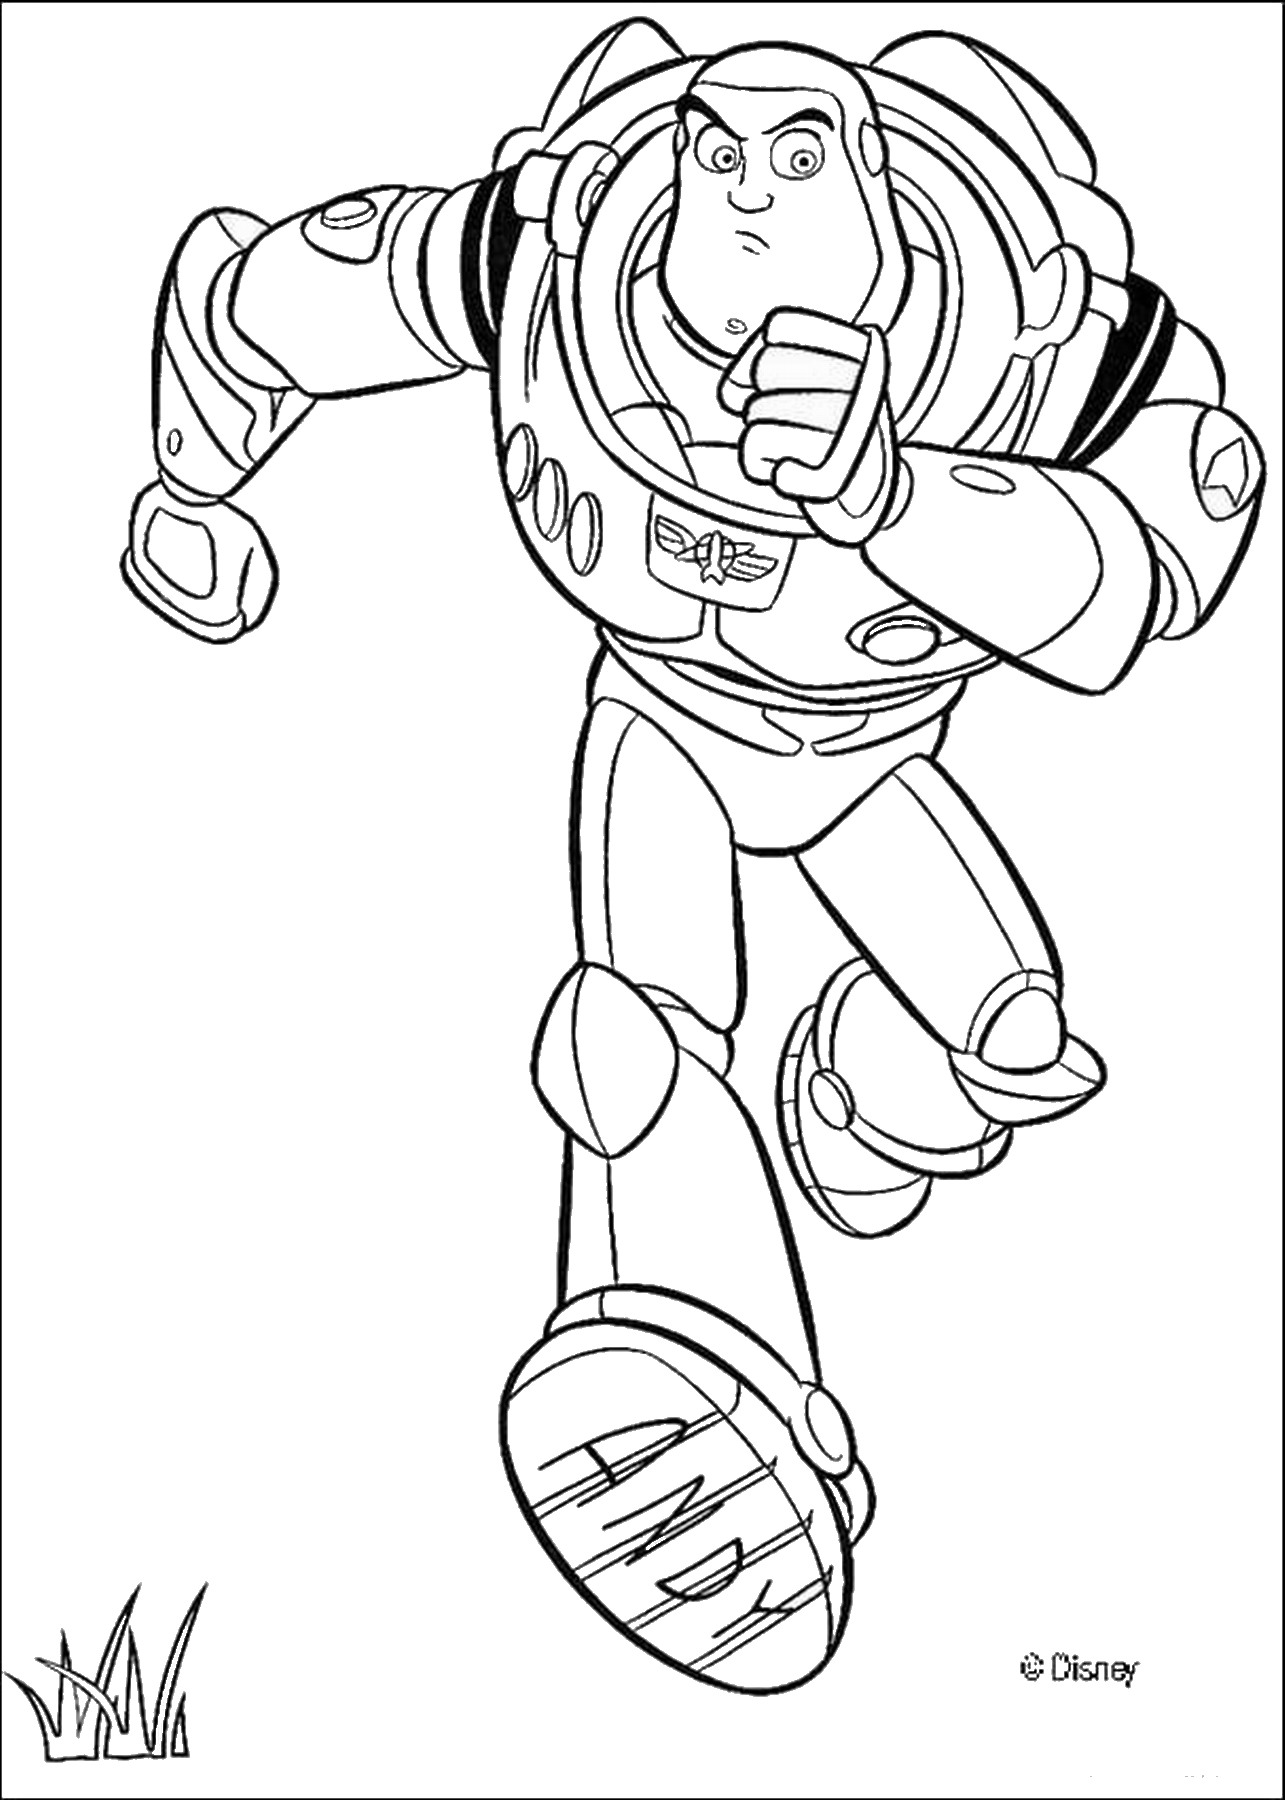 toy story 2 pictures to colour toy story coloring pages 2 pictures colour toy story to